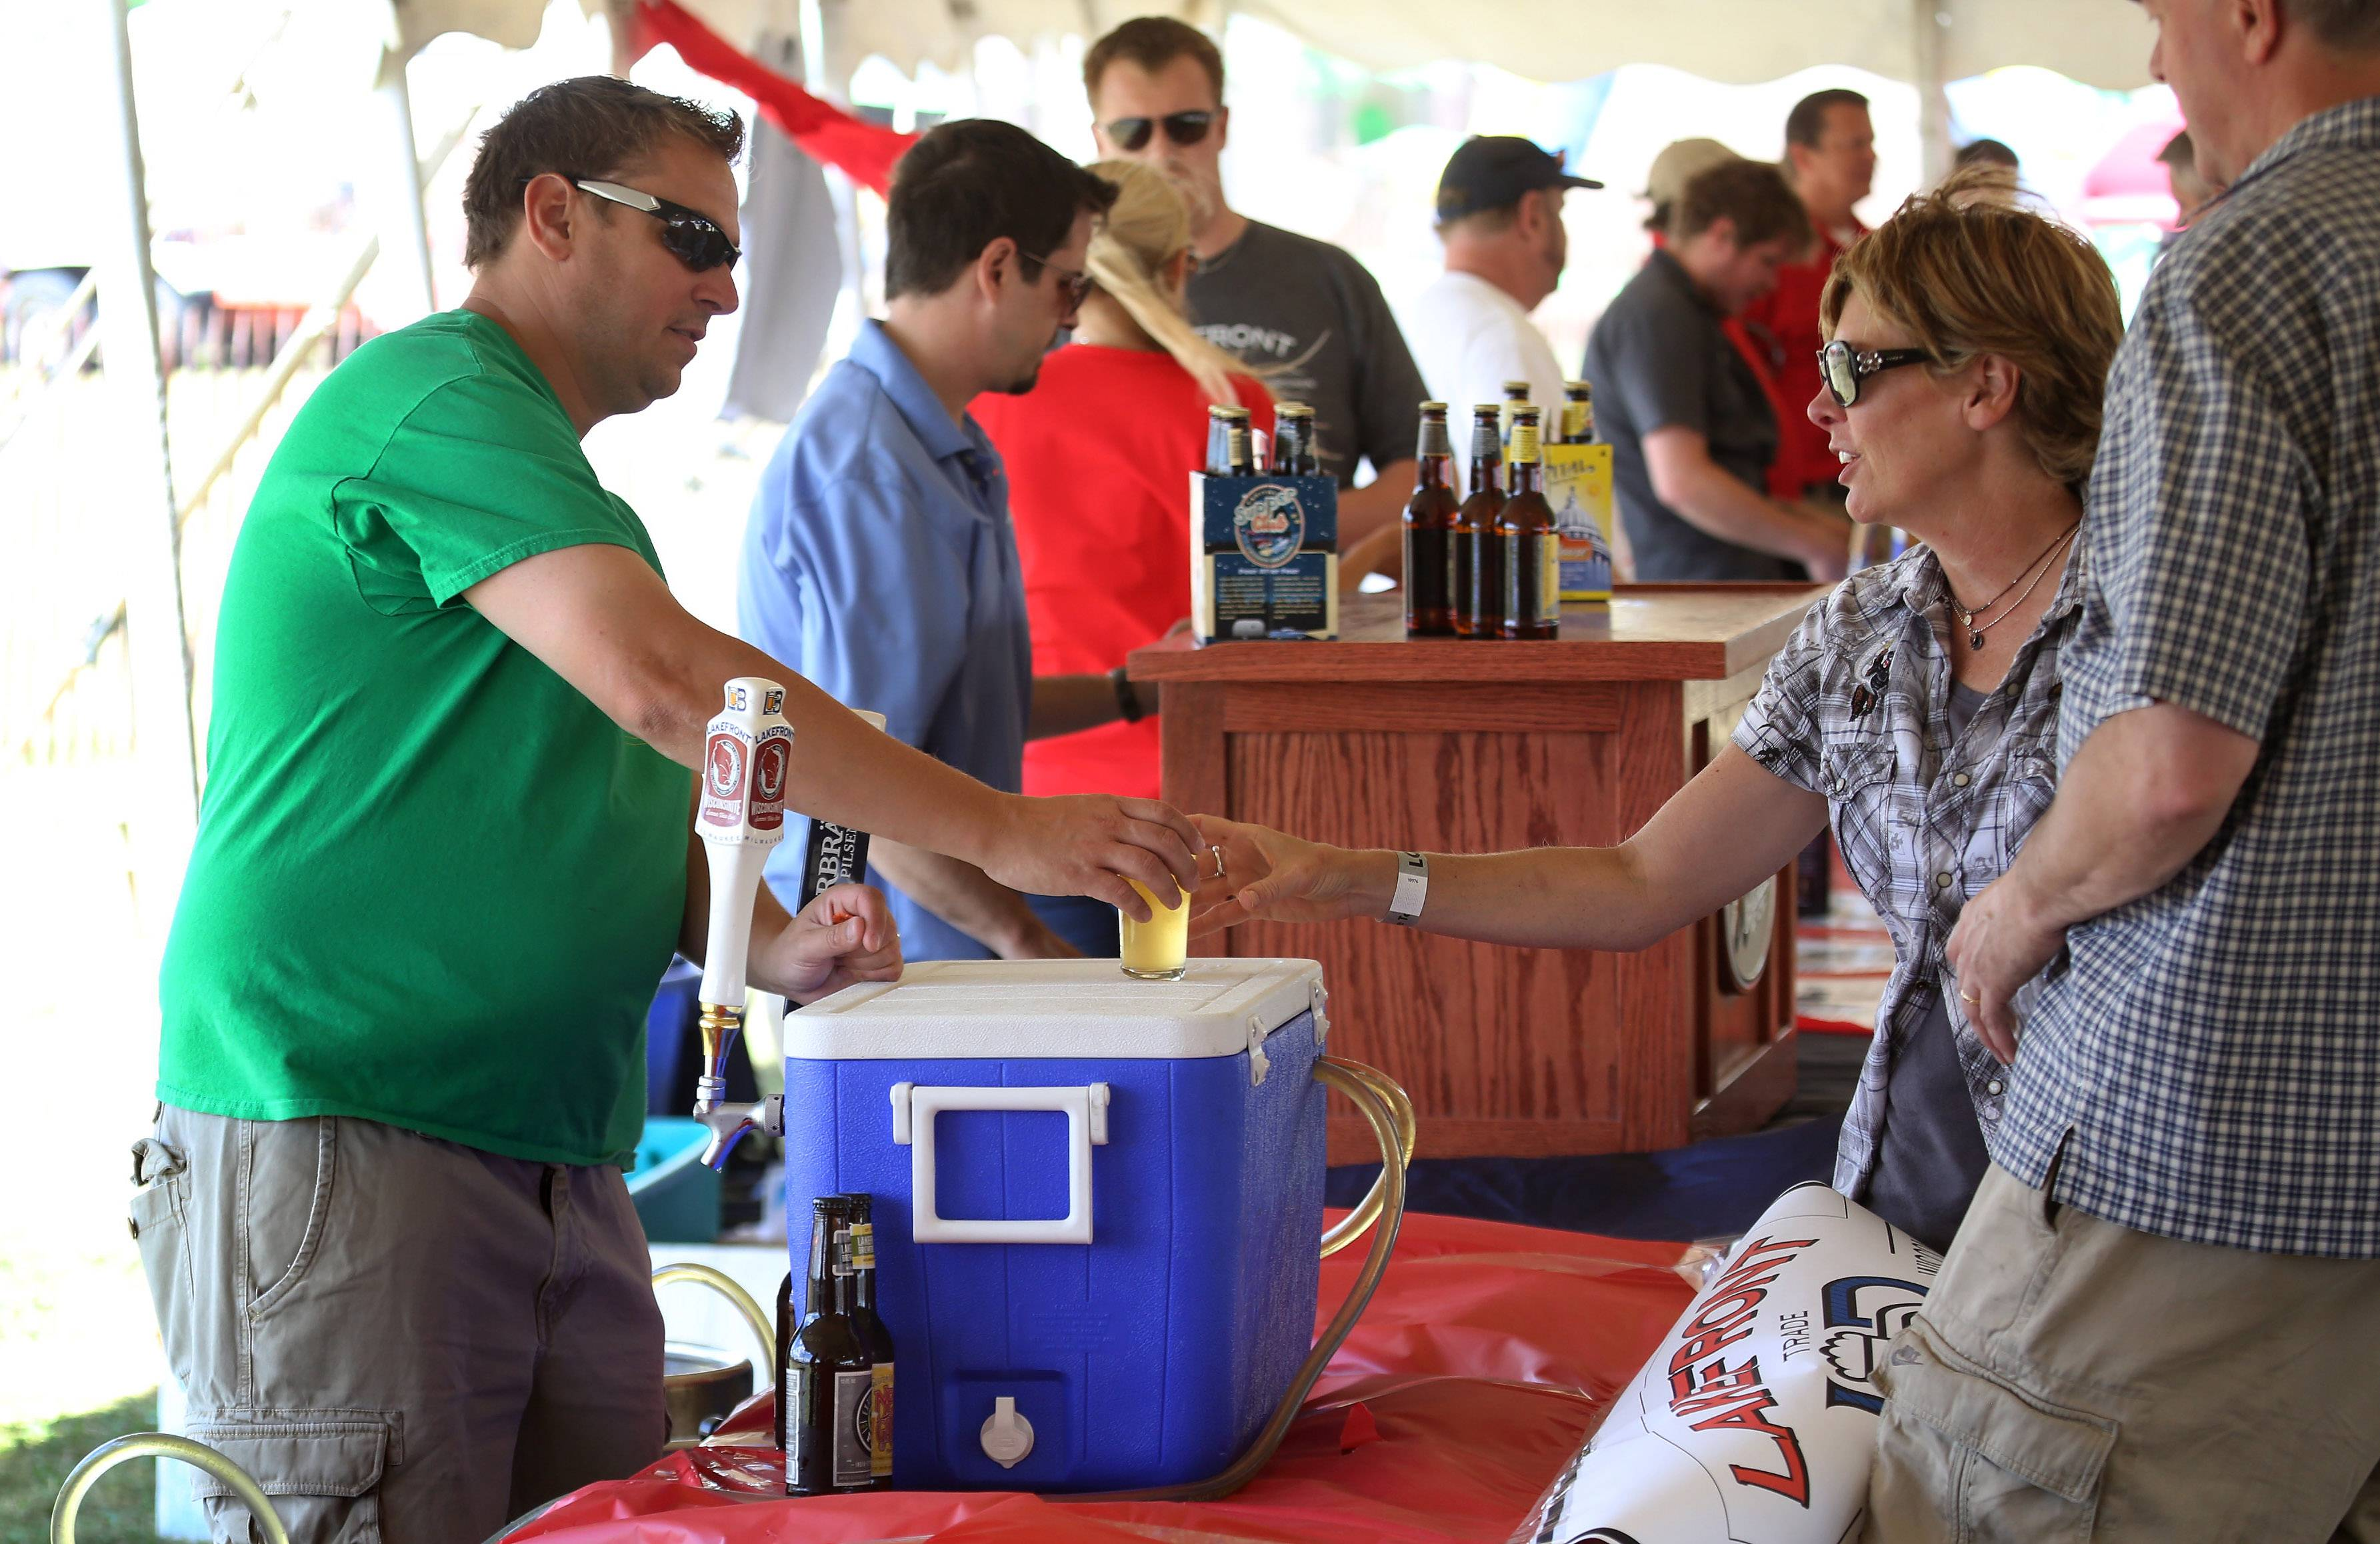 Brian Cooper of Baderbrau Brewery serves beer to Missy Foss of Third Lake during Sunday's inaugural Craft Beer Festival at the Lake County Fair in Grayslake.